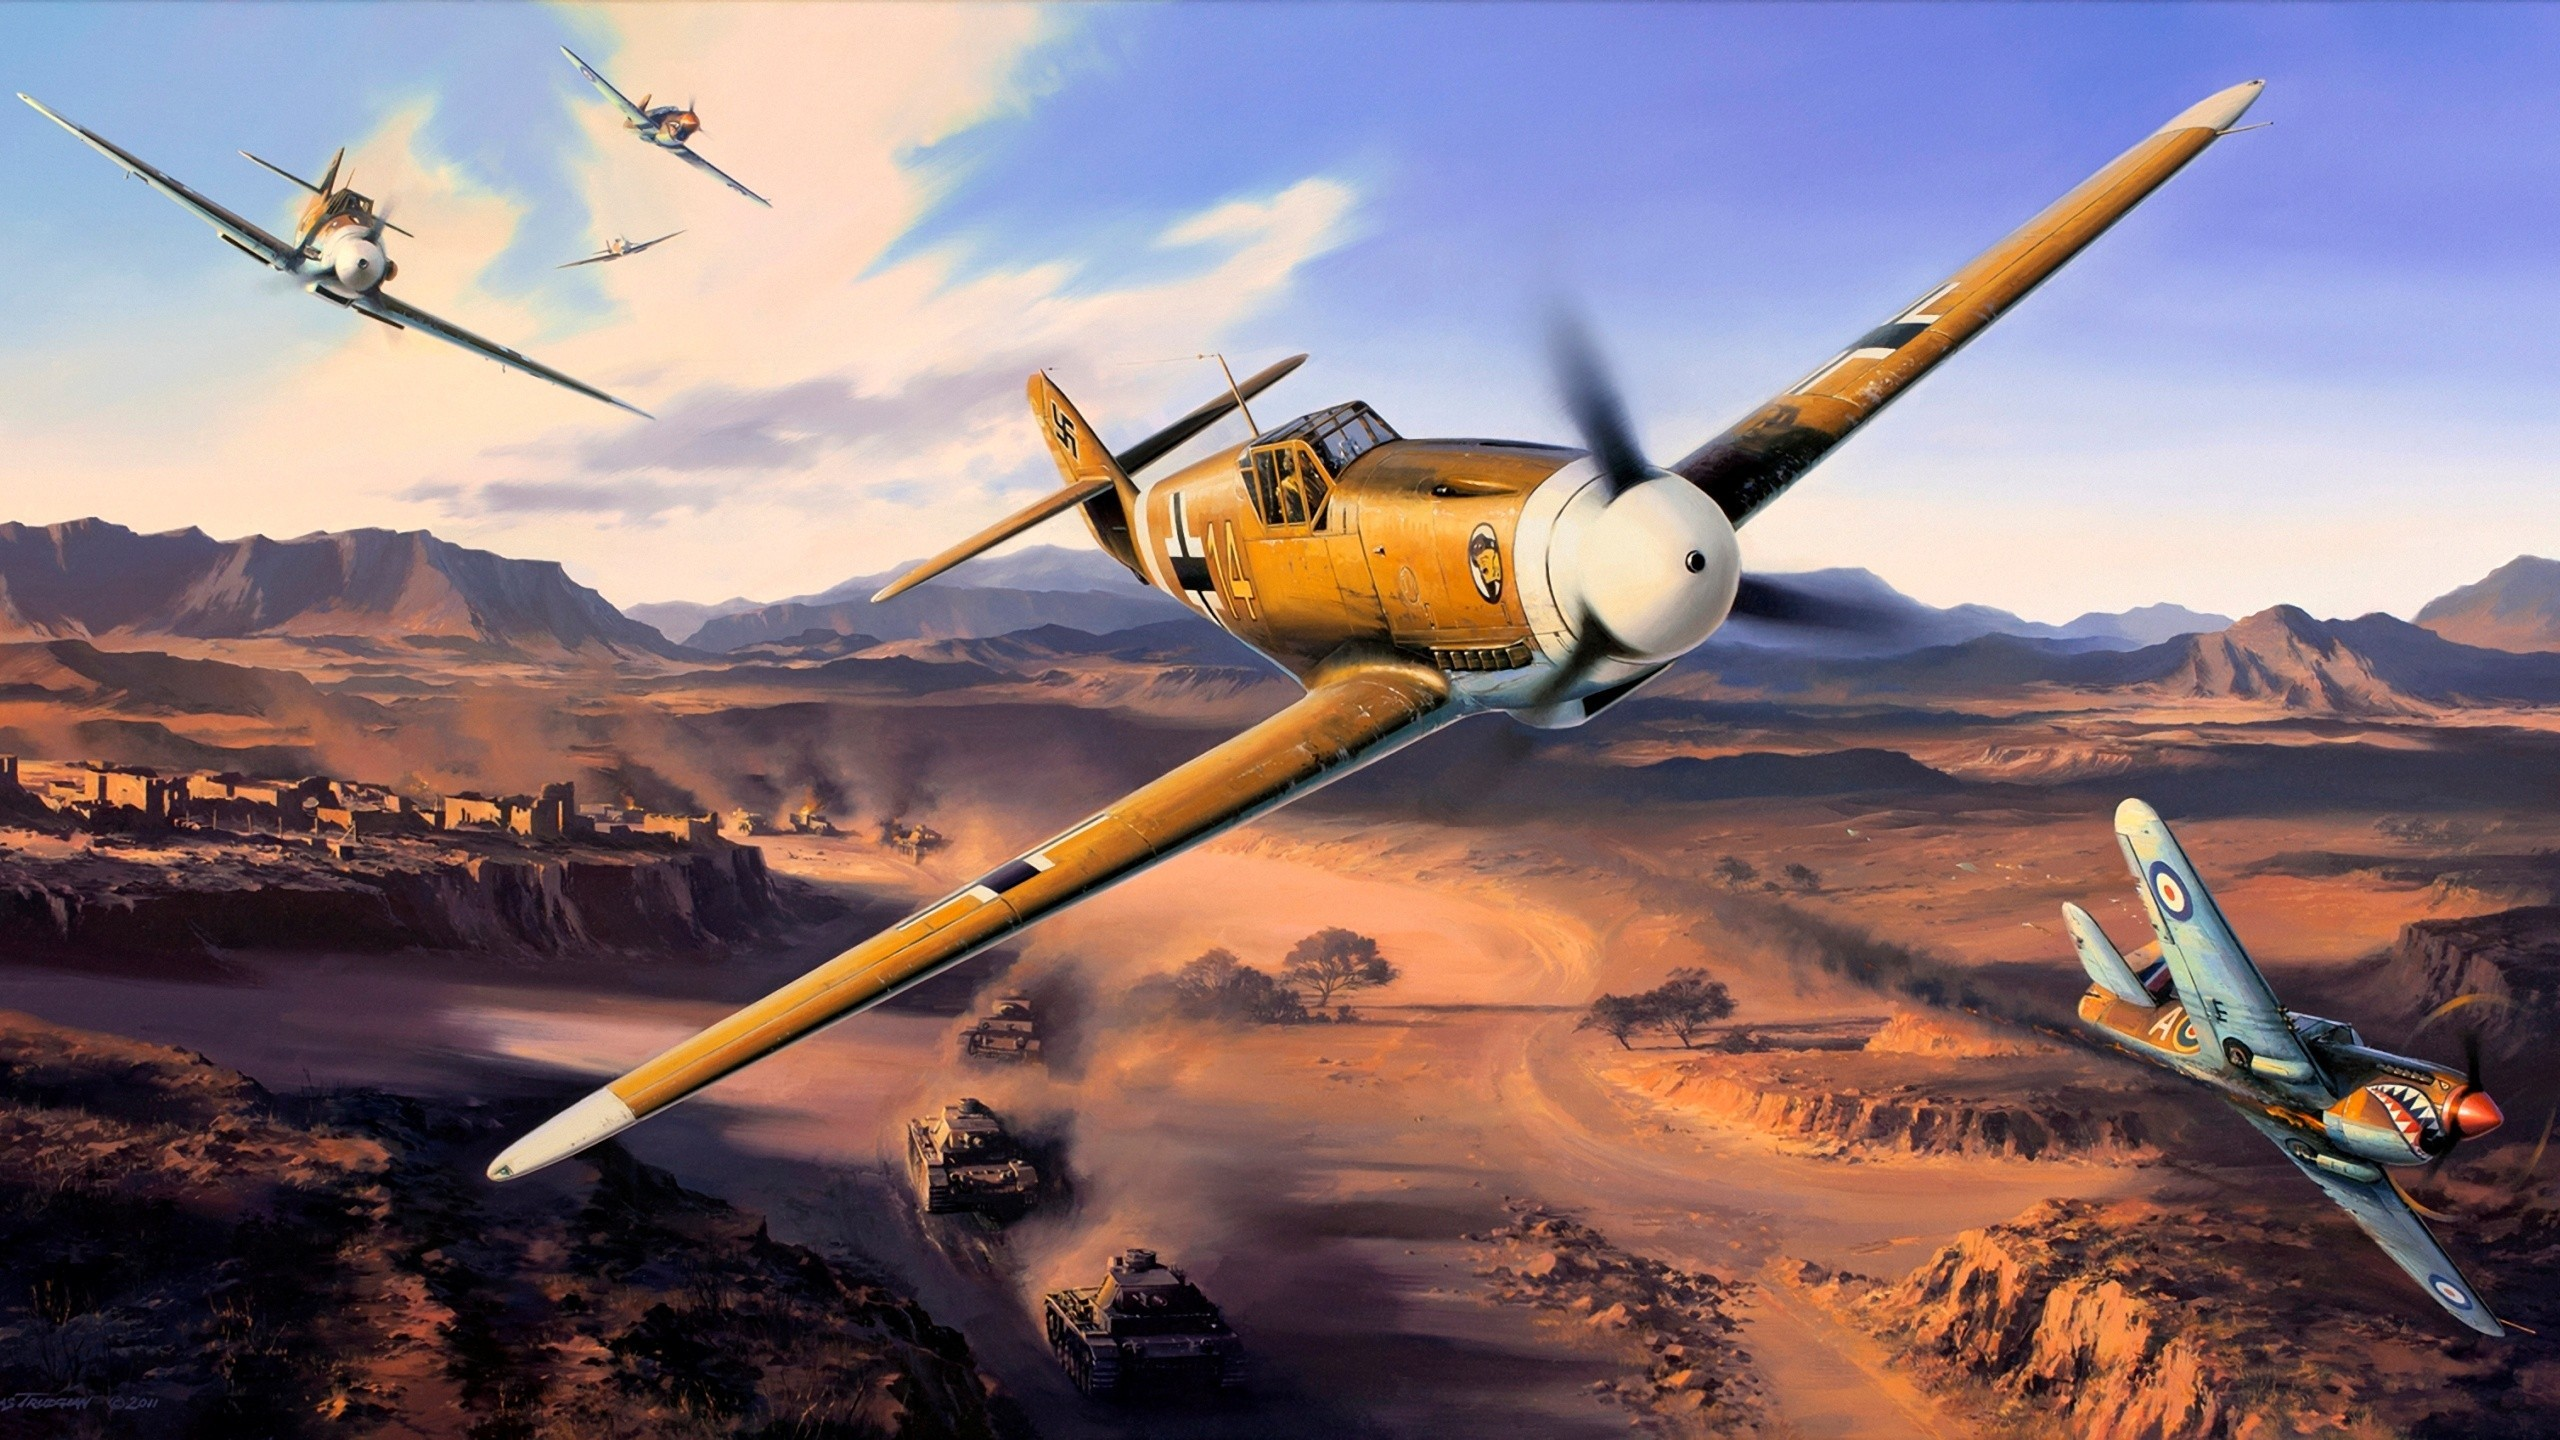 Messerschmitt bf 109 wallpapers 79 pictures - World war 2 desktop wallpaper ...